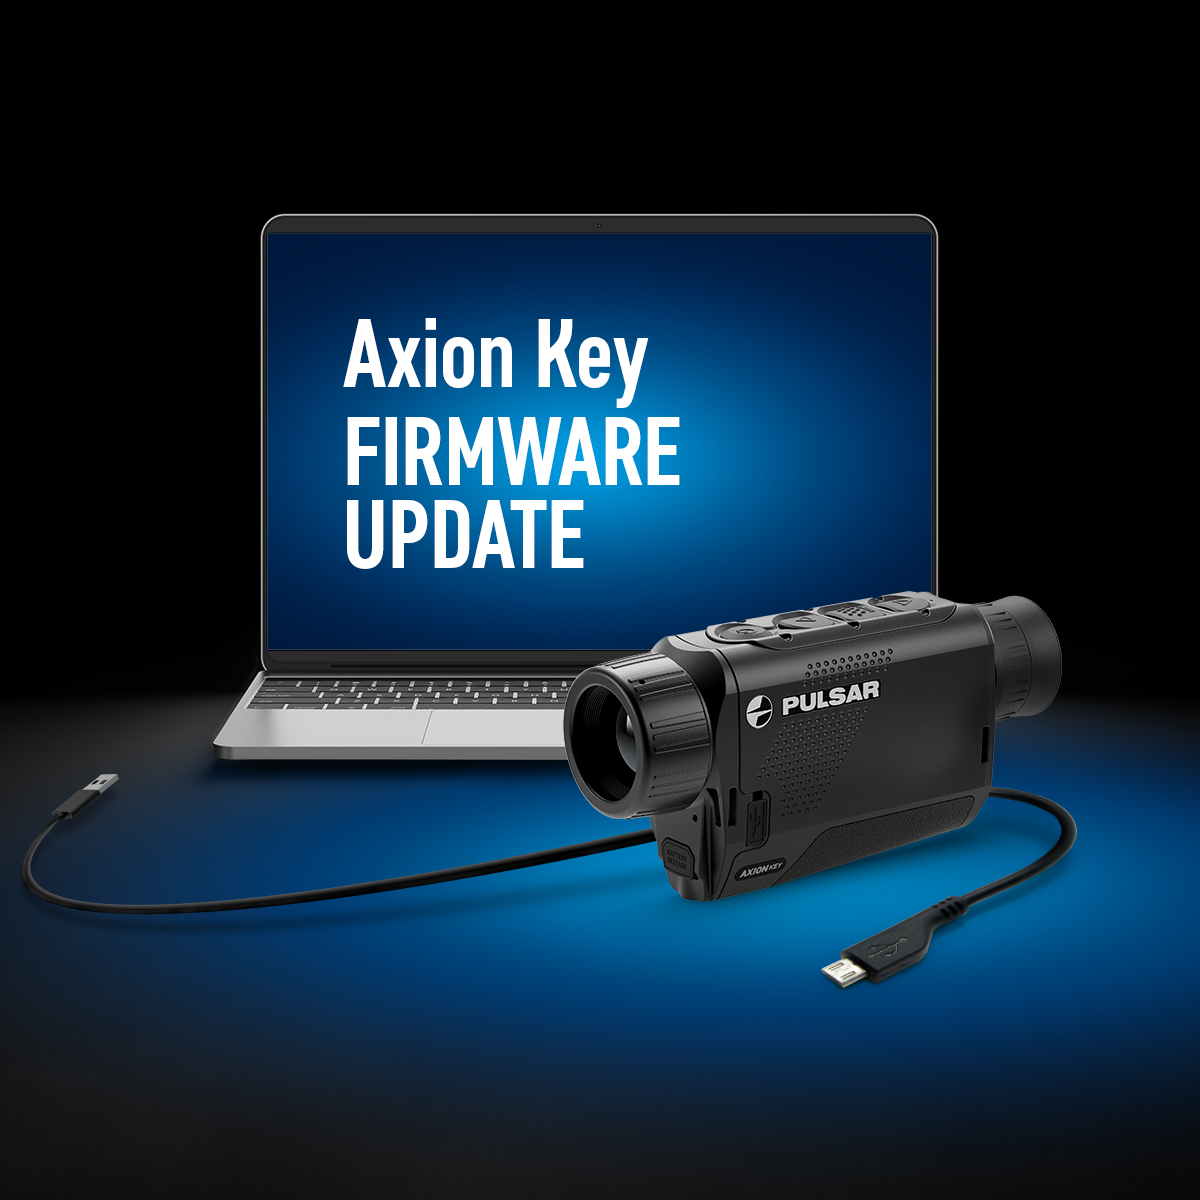 Axion Key Firmware Update